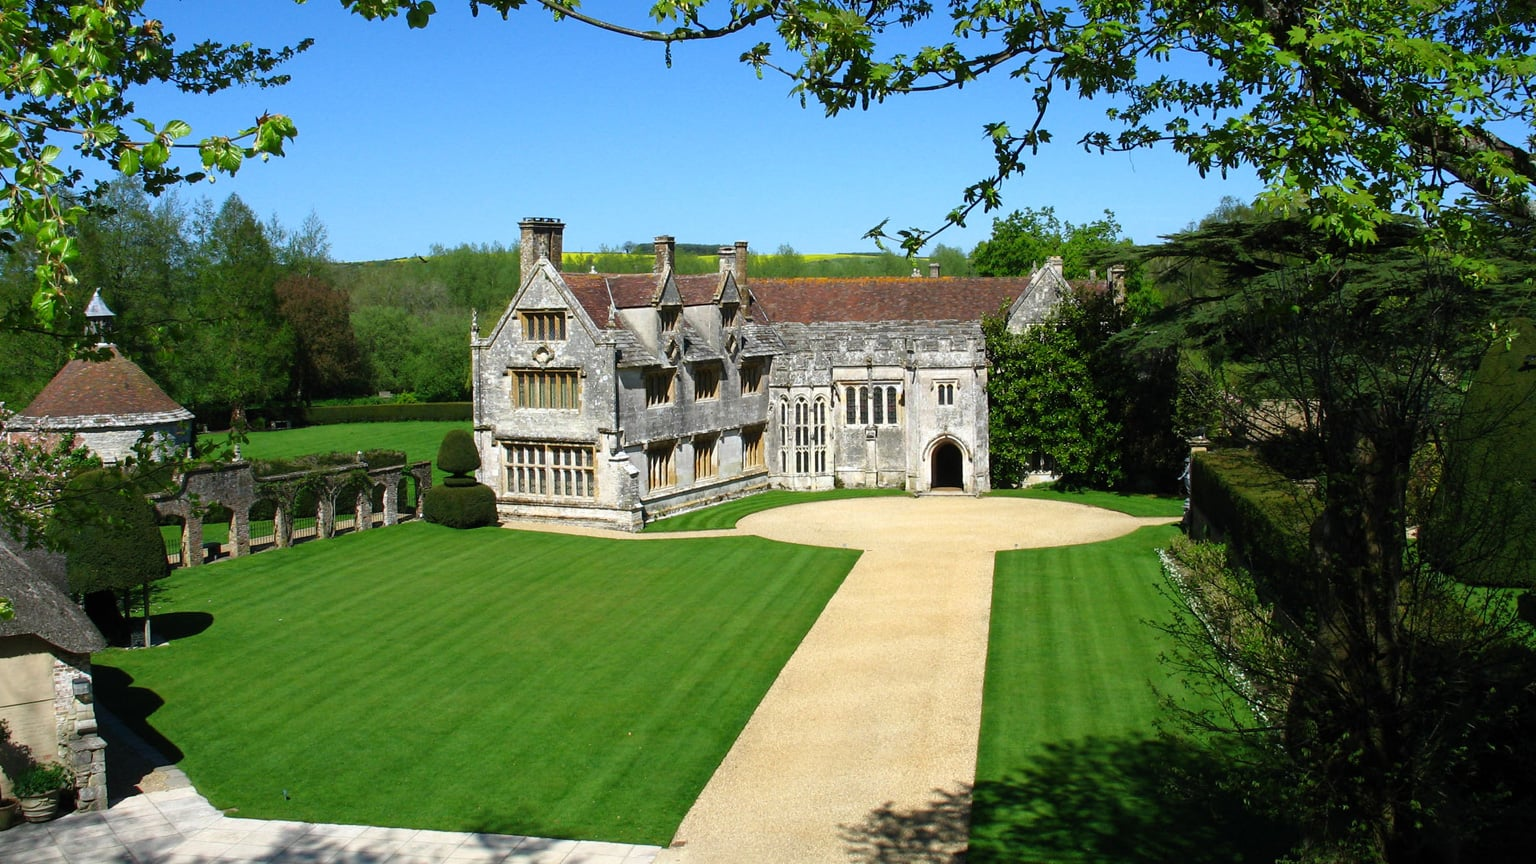 4. Athelhampton House - 50% off entry with National Art Pass